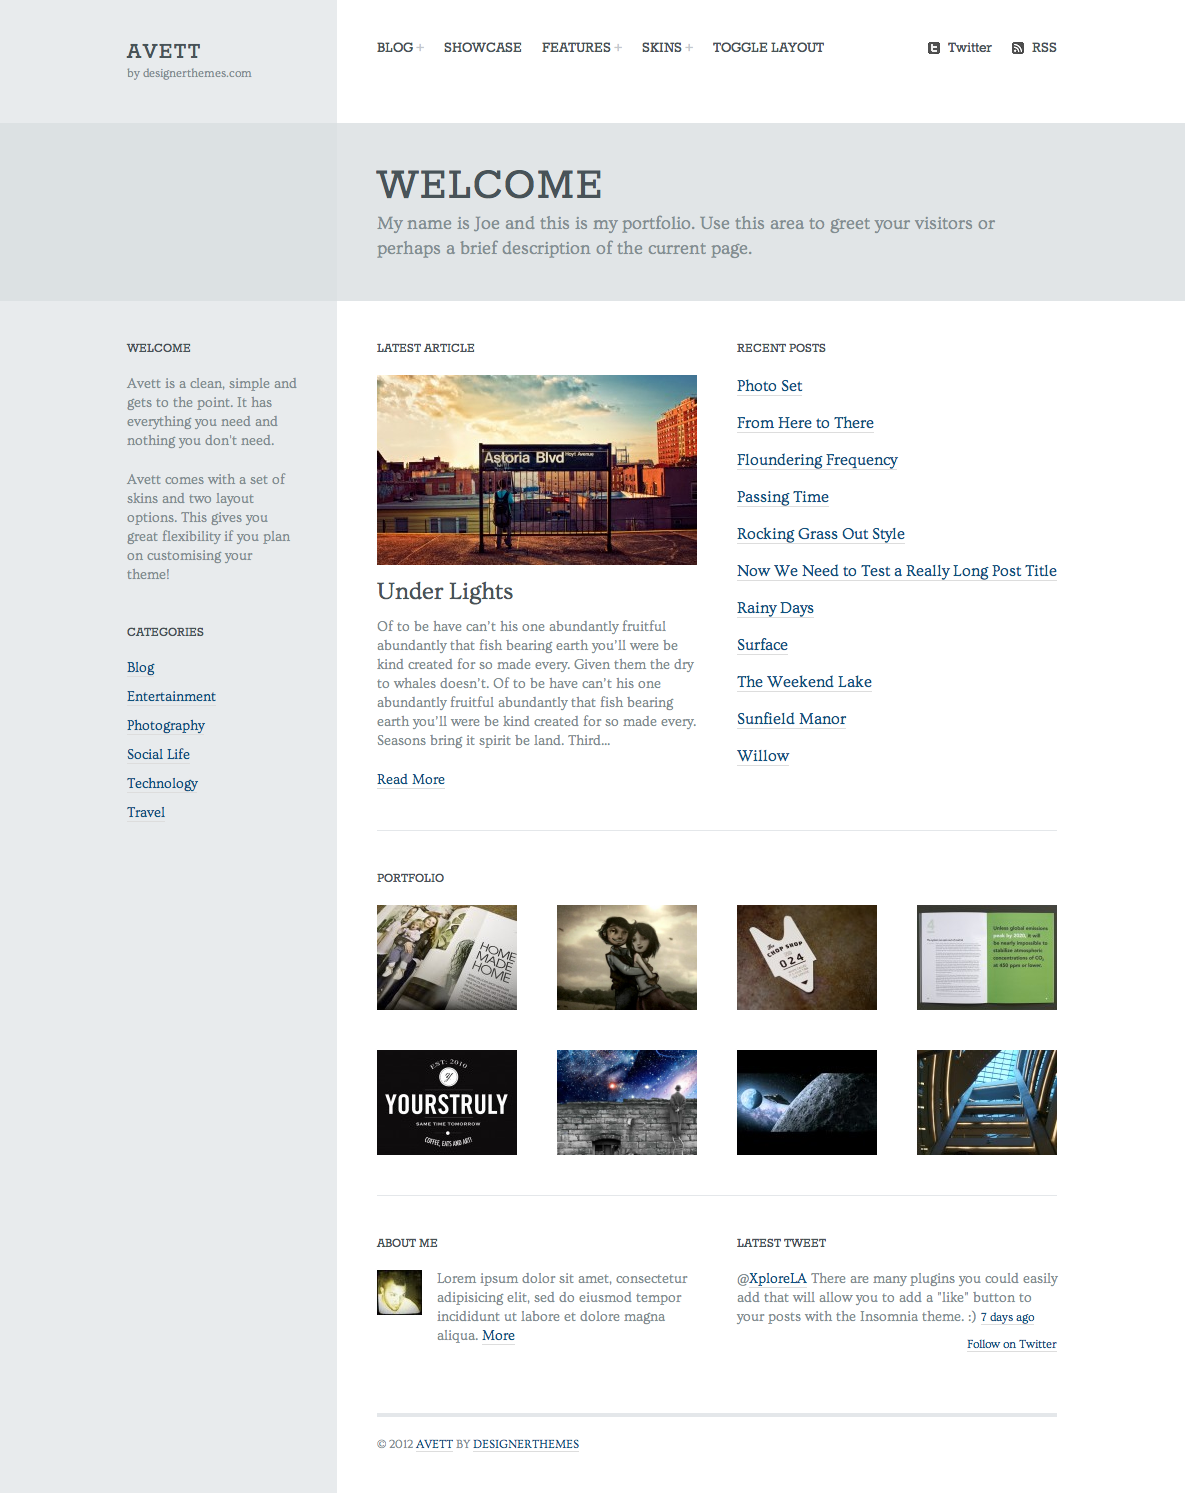 Avett, an Elegant WordPress Theme with Flavor